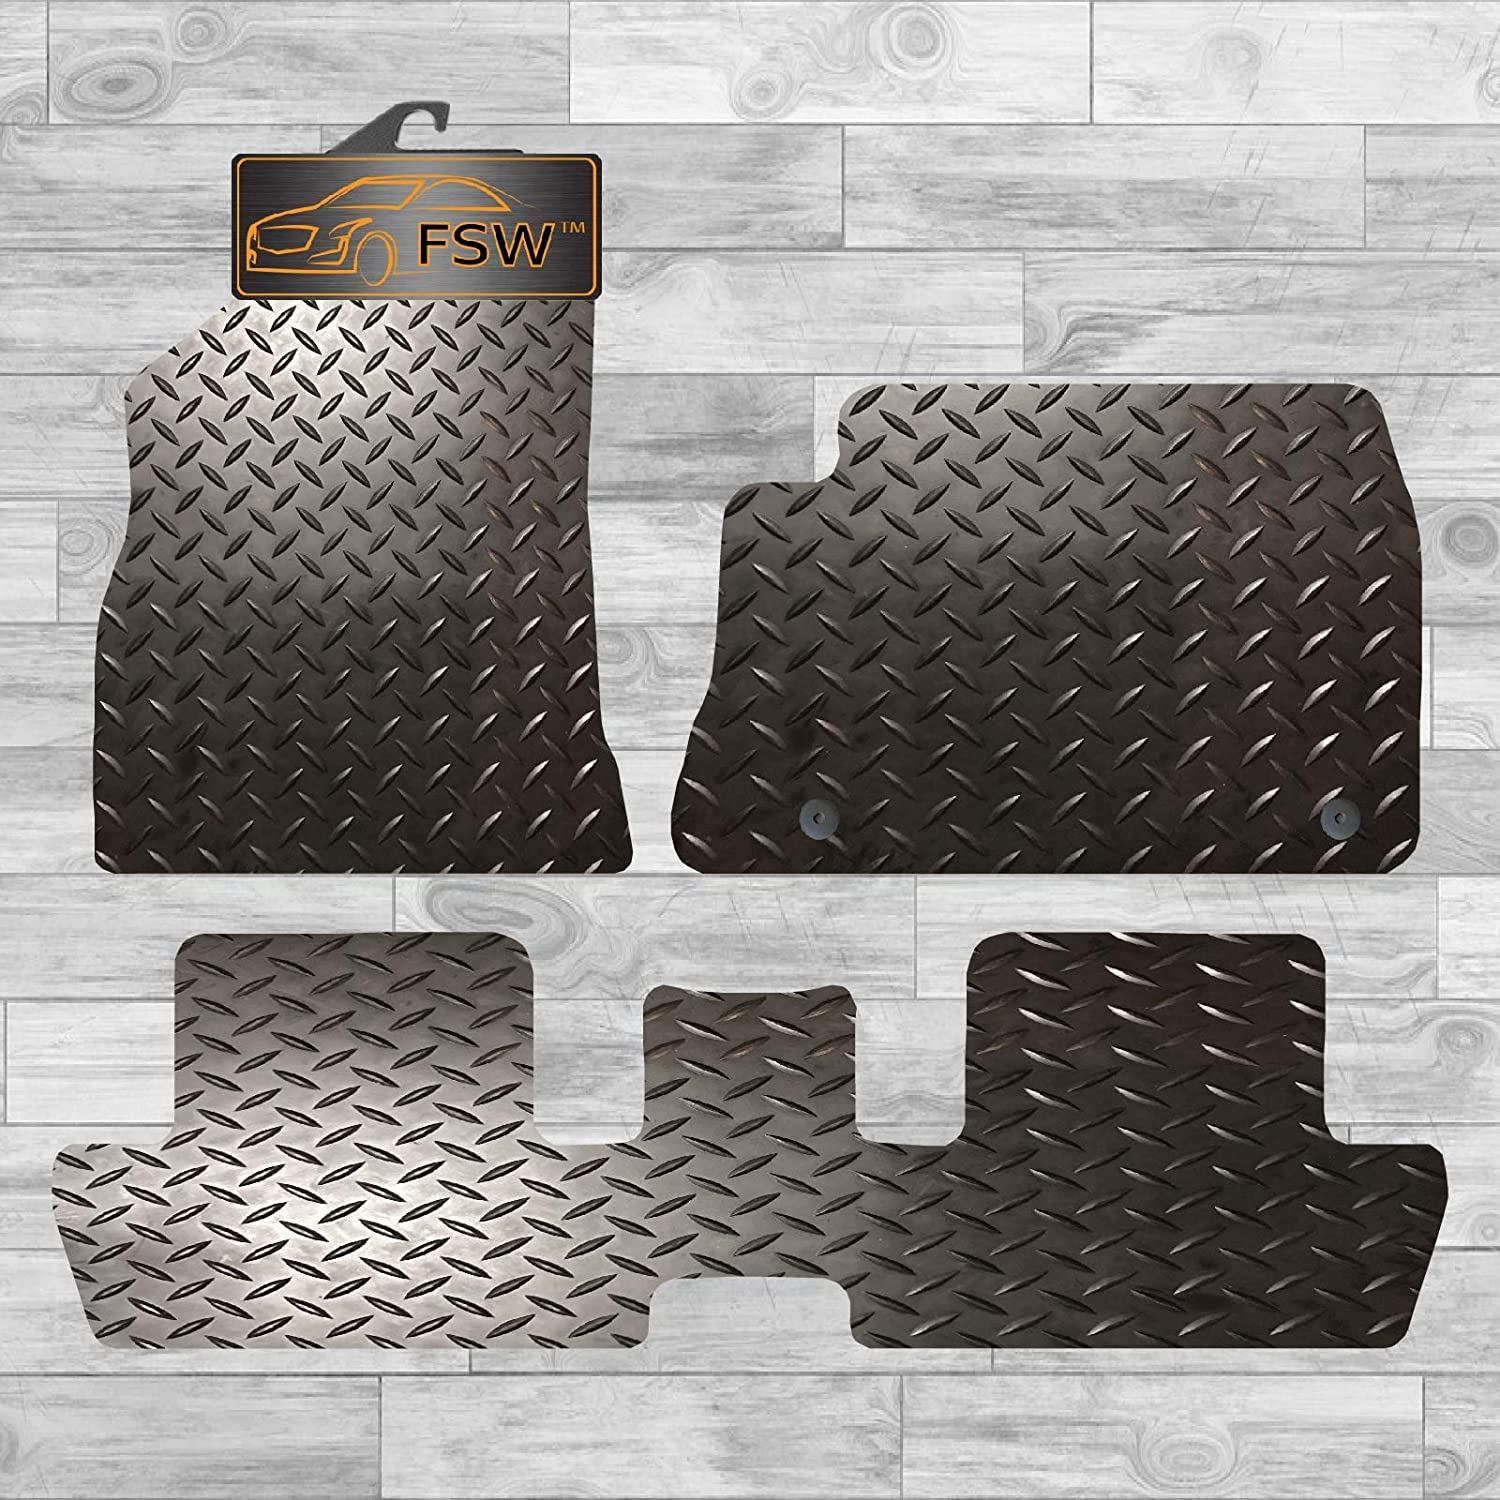 FSW 3008 2009-2016 Tailored 5MM Waterproof Rubber EXTRA Heavy Duty Car Floor Mats